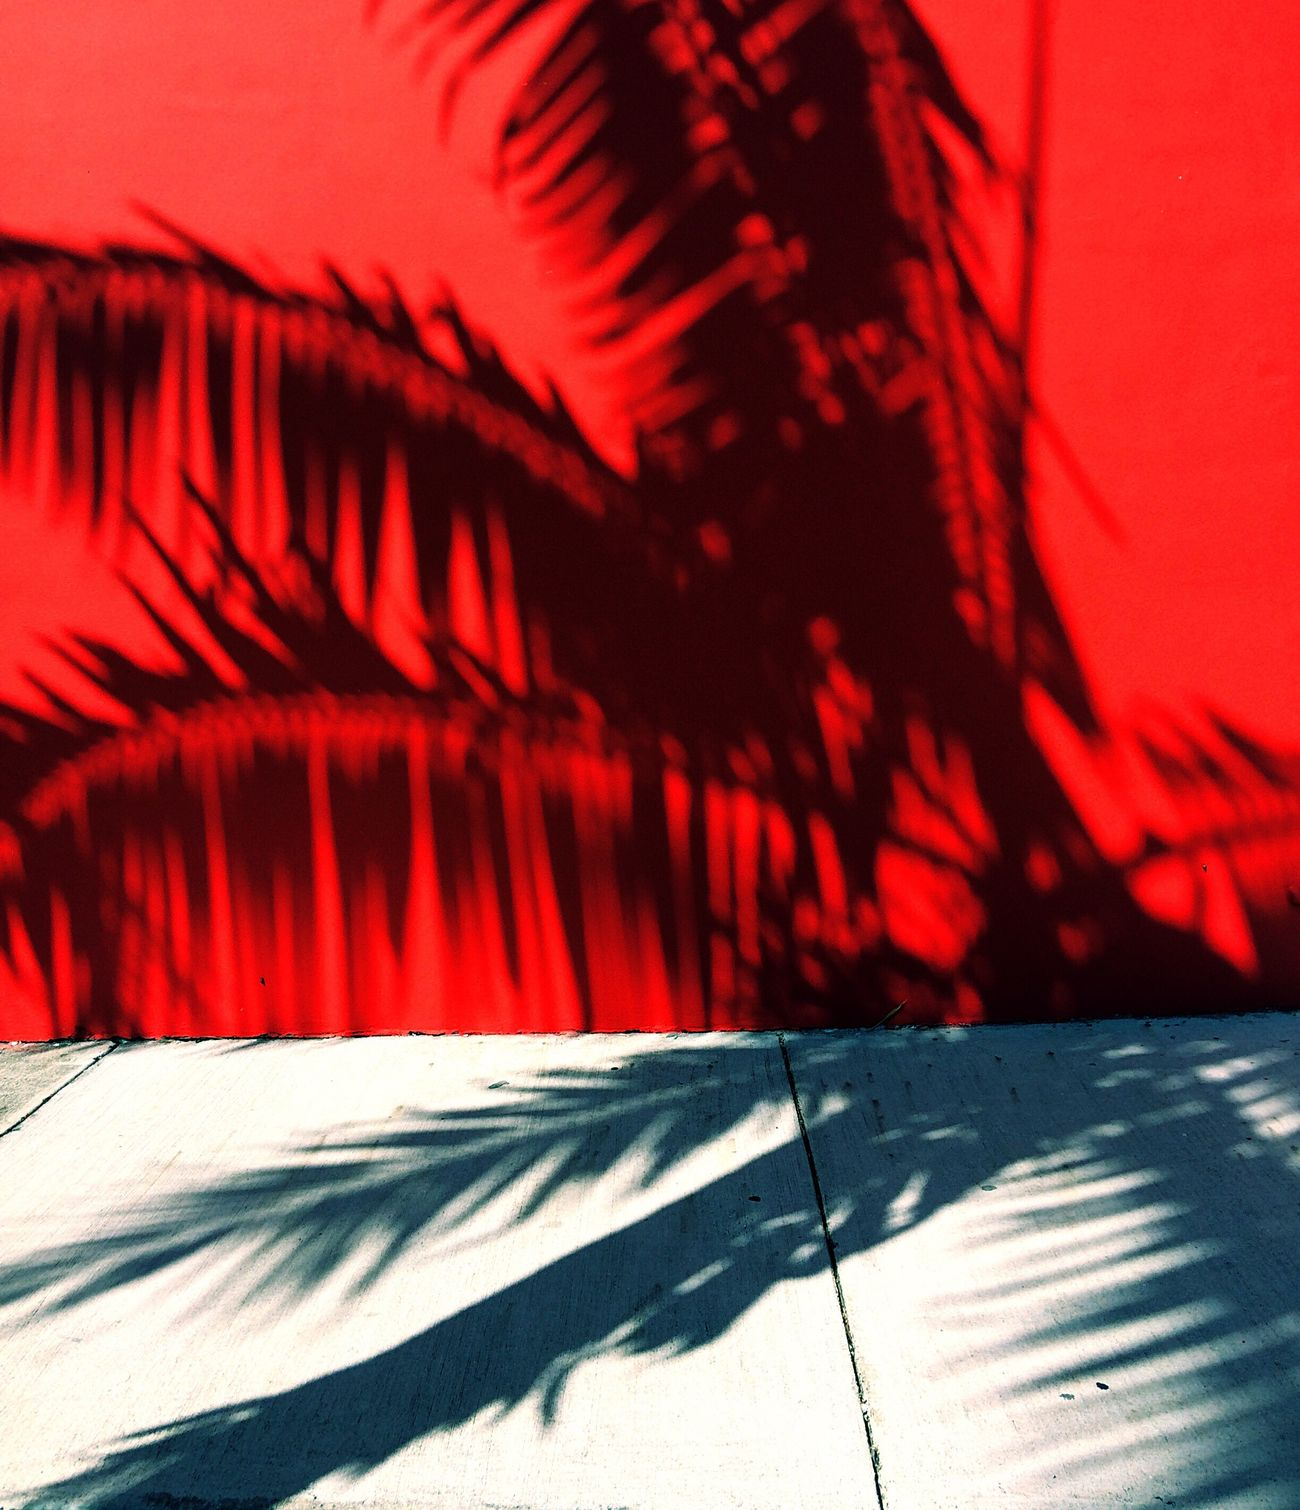 Red Backgrounds Shadow No People Minimalist Architecture The City Light Unique Perspectives Silhouette Outdoors Urban Landscape Urban Jungle palm tree shadow Palm Tree Palm Leaf Shadows The City Light Minimalist Architecture